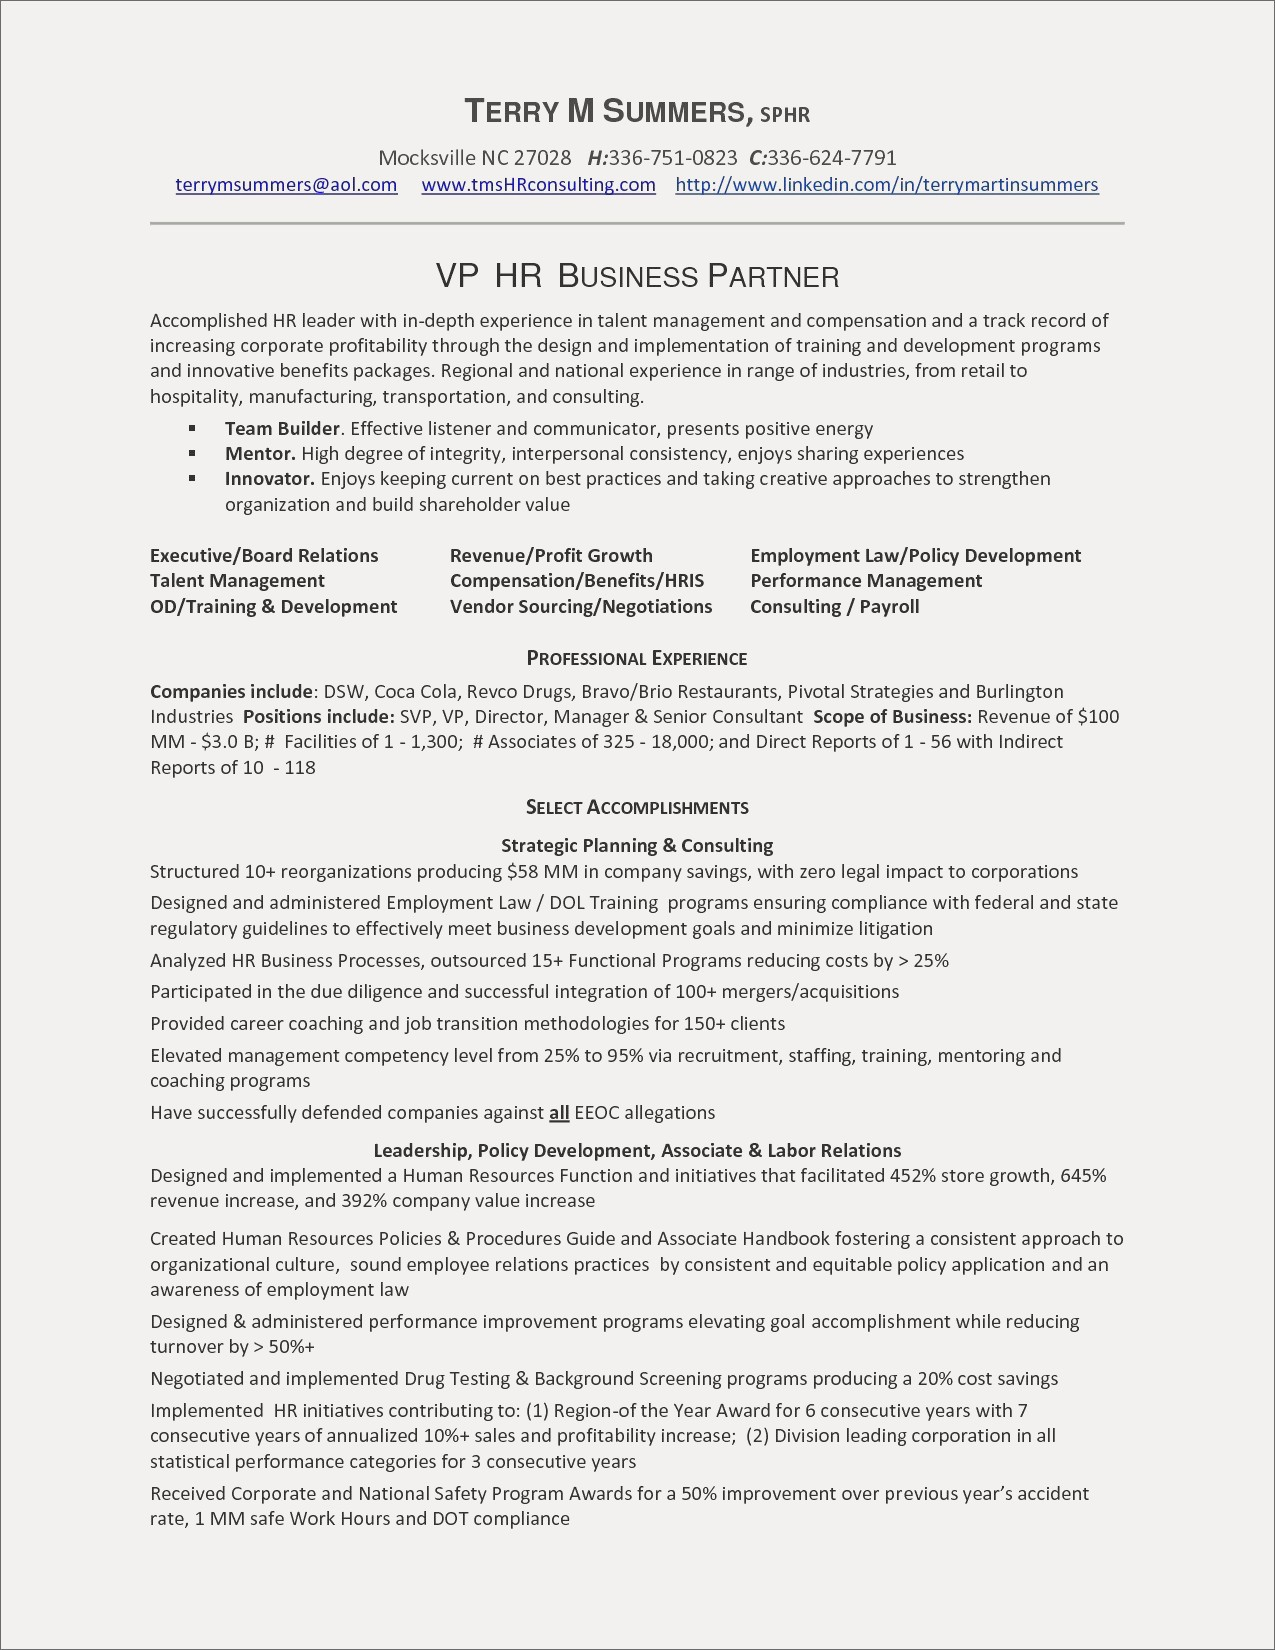 Healthcare Business Analyst Resume - Real Estate attorney Resume Best Business Analyst Resume Templates